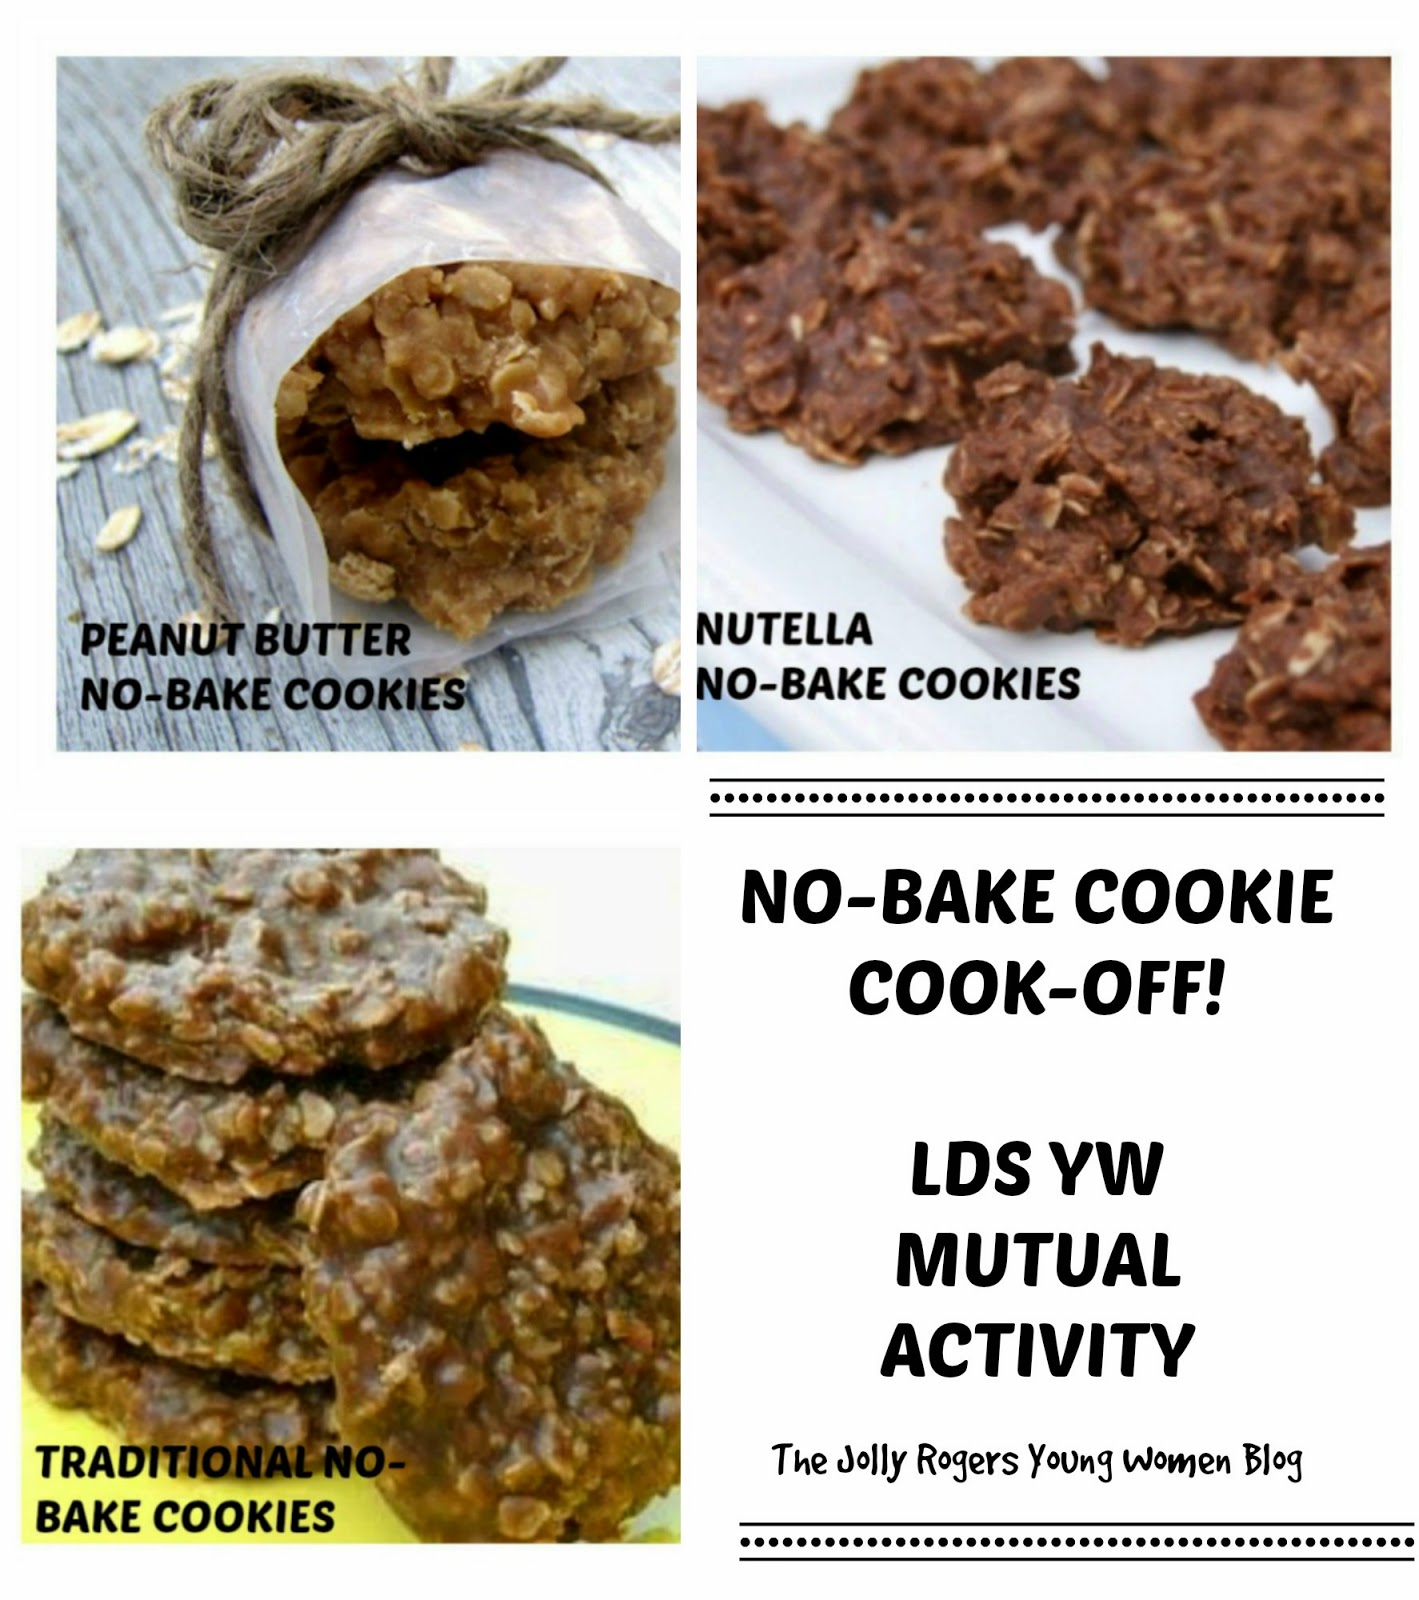 Peanut-Butter No-Bake Cookies (recipe HERE ), Nutella No-Bake Cookies ...